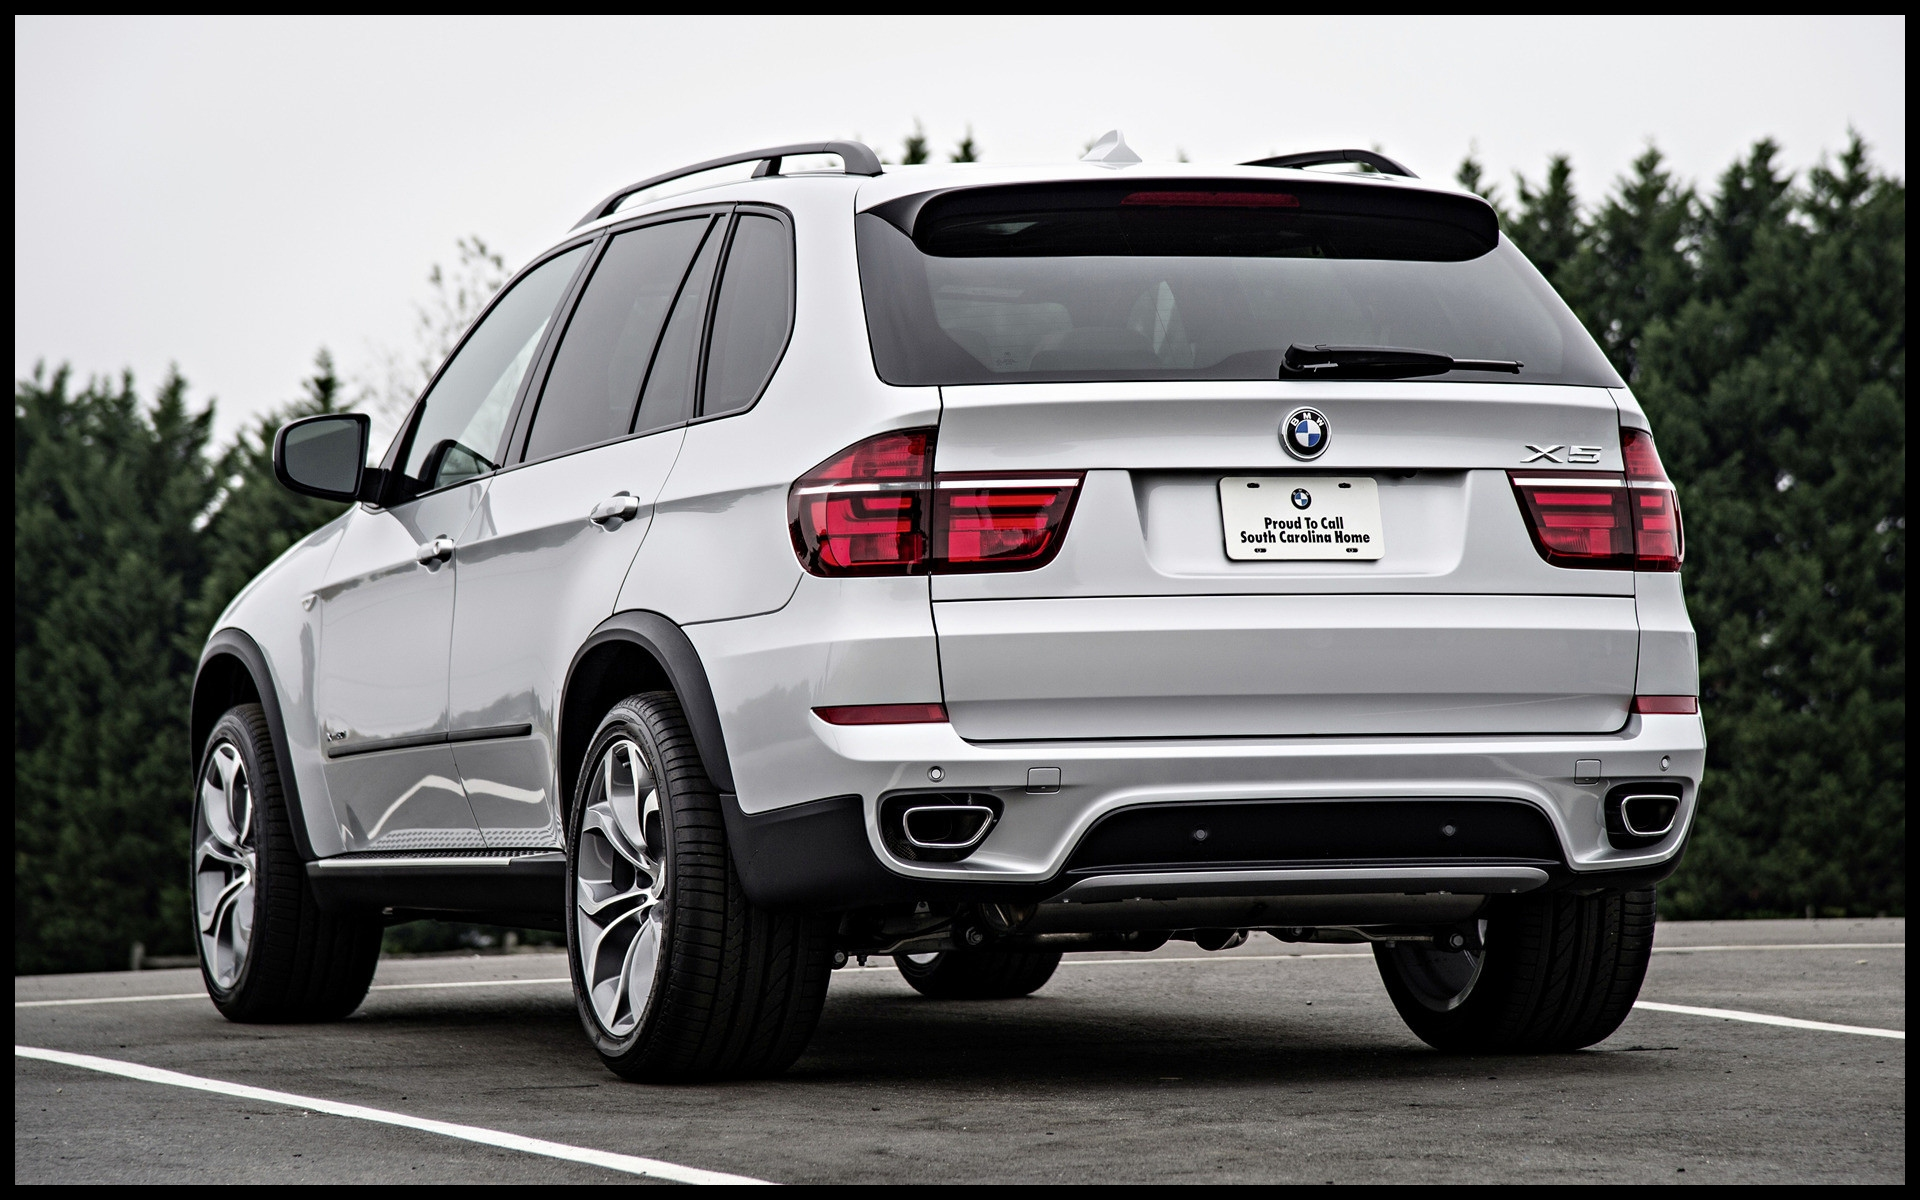 Bmw X5 50i 2011 Unique Bmw X5 50i 2011 Us Wallpapers and Hd Car Pixel